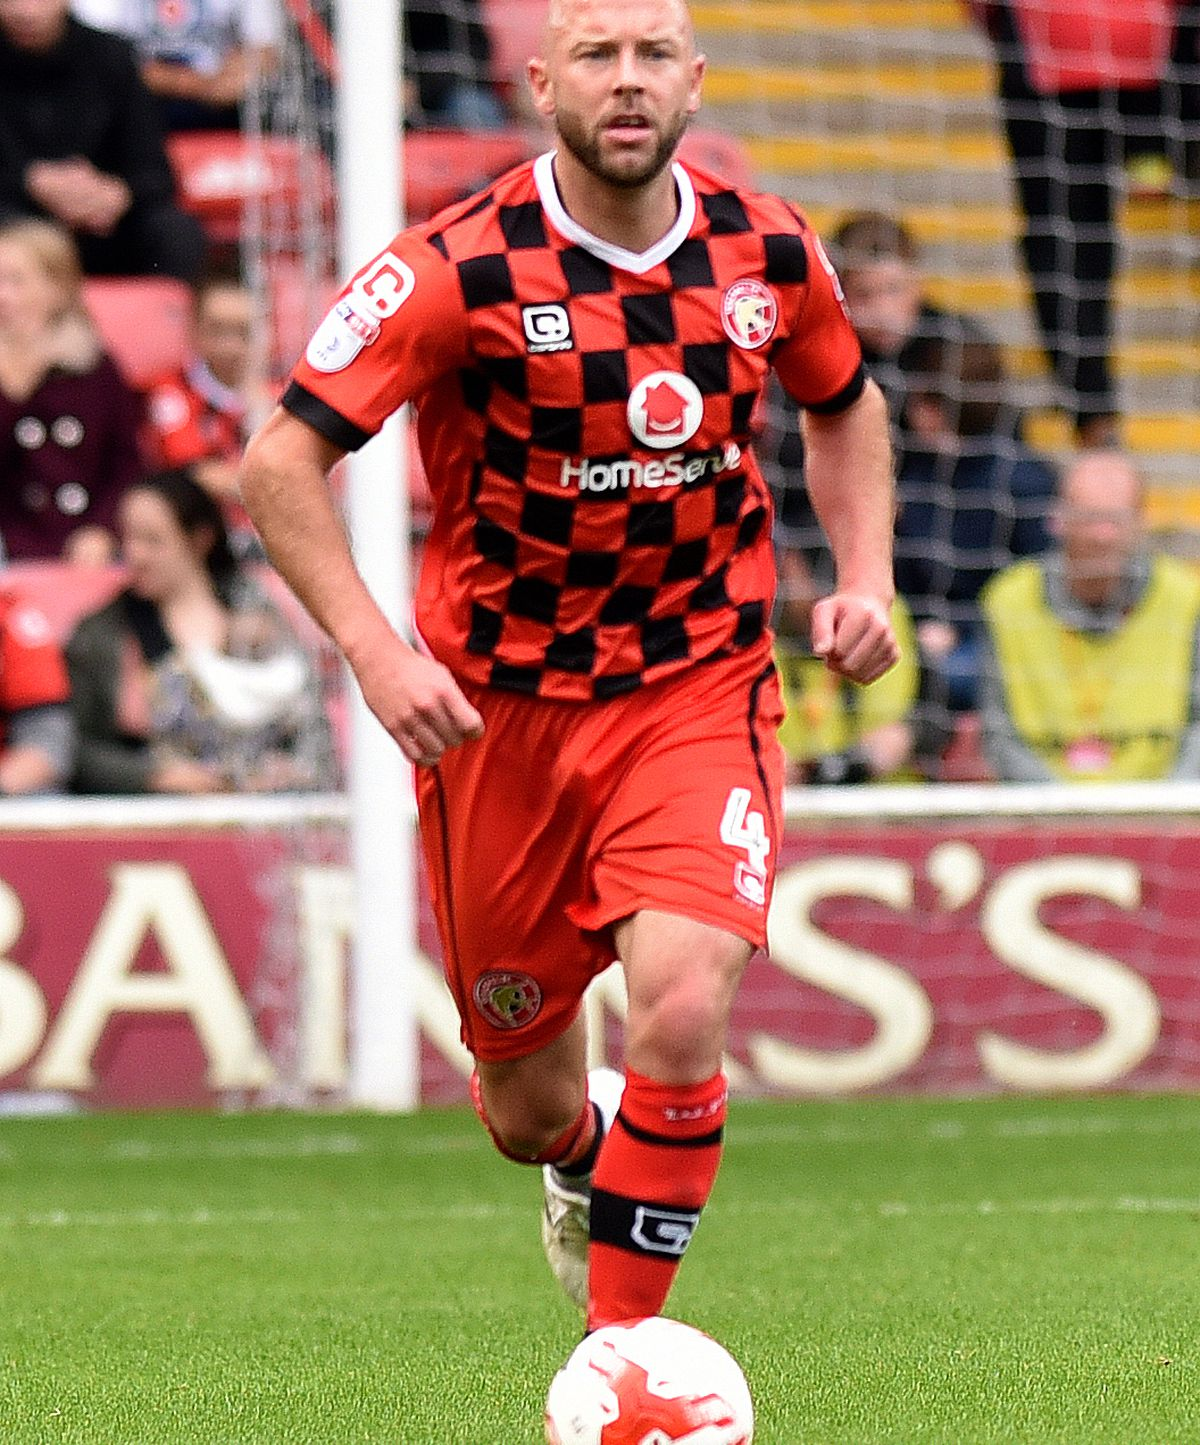 Walsall's James O'Connor